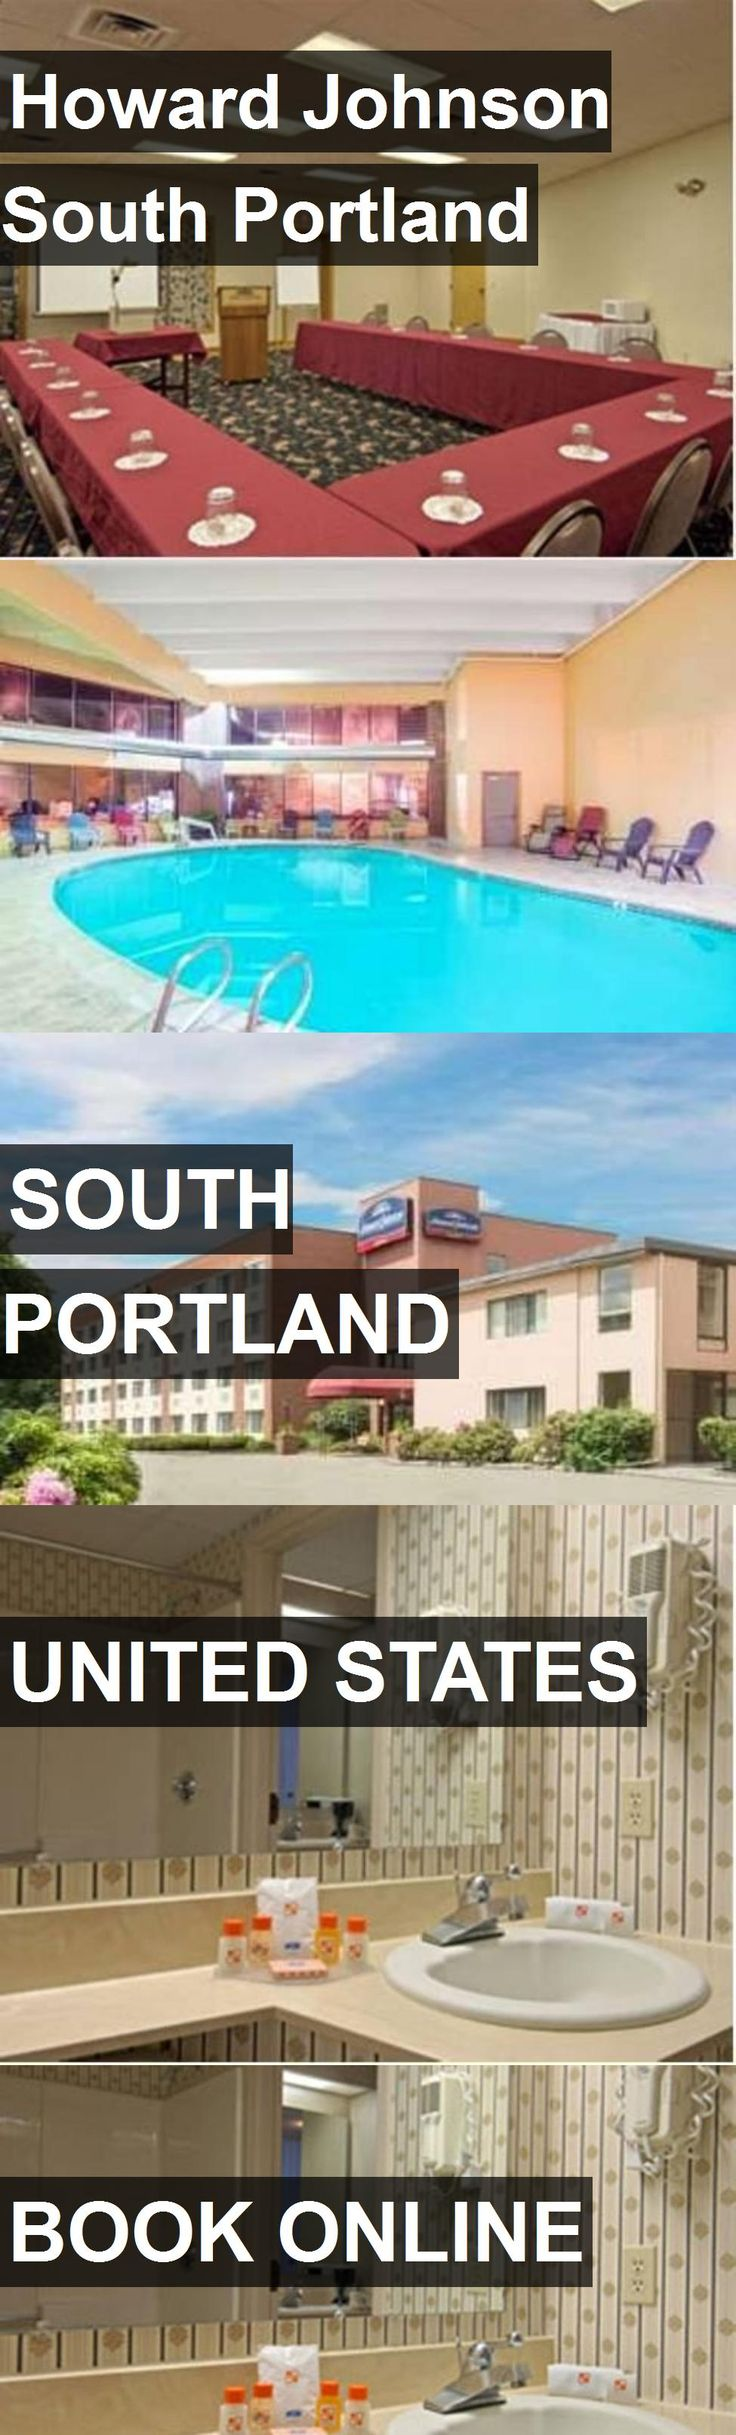 Hotel Howard Johnson South Portland in South Portland, United States. For more information, photos, reviews and best prices please follow the link. #UnitedStates #SouthPortland #travel #vacation #hotel